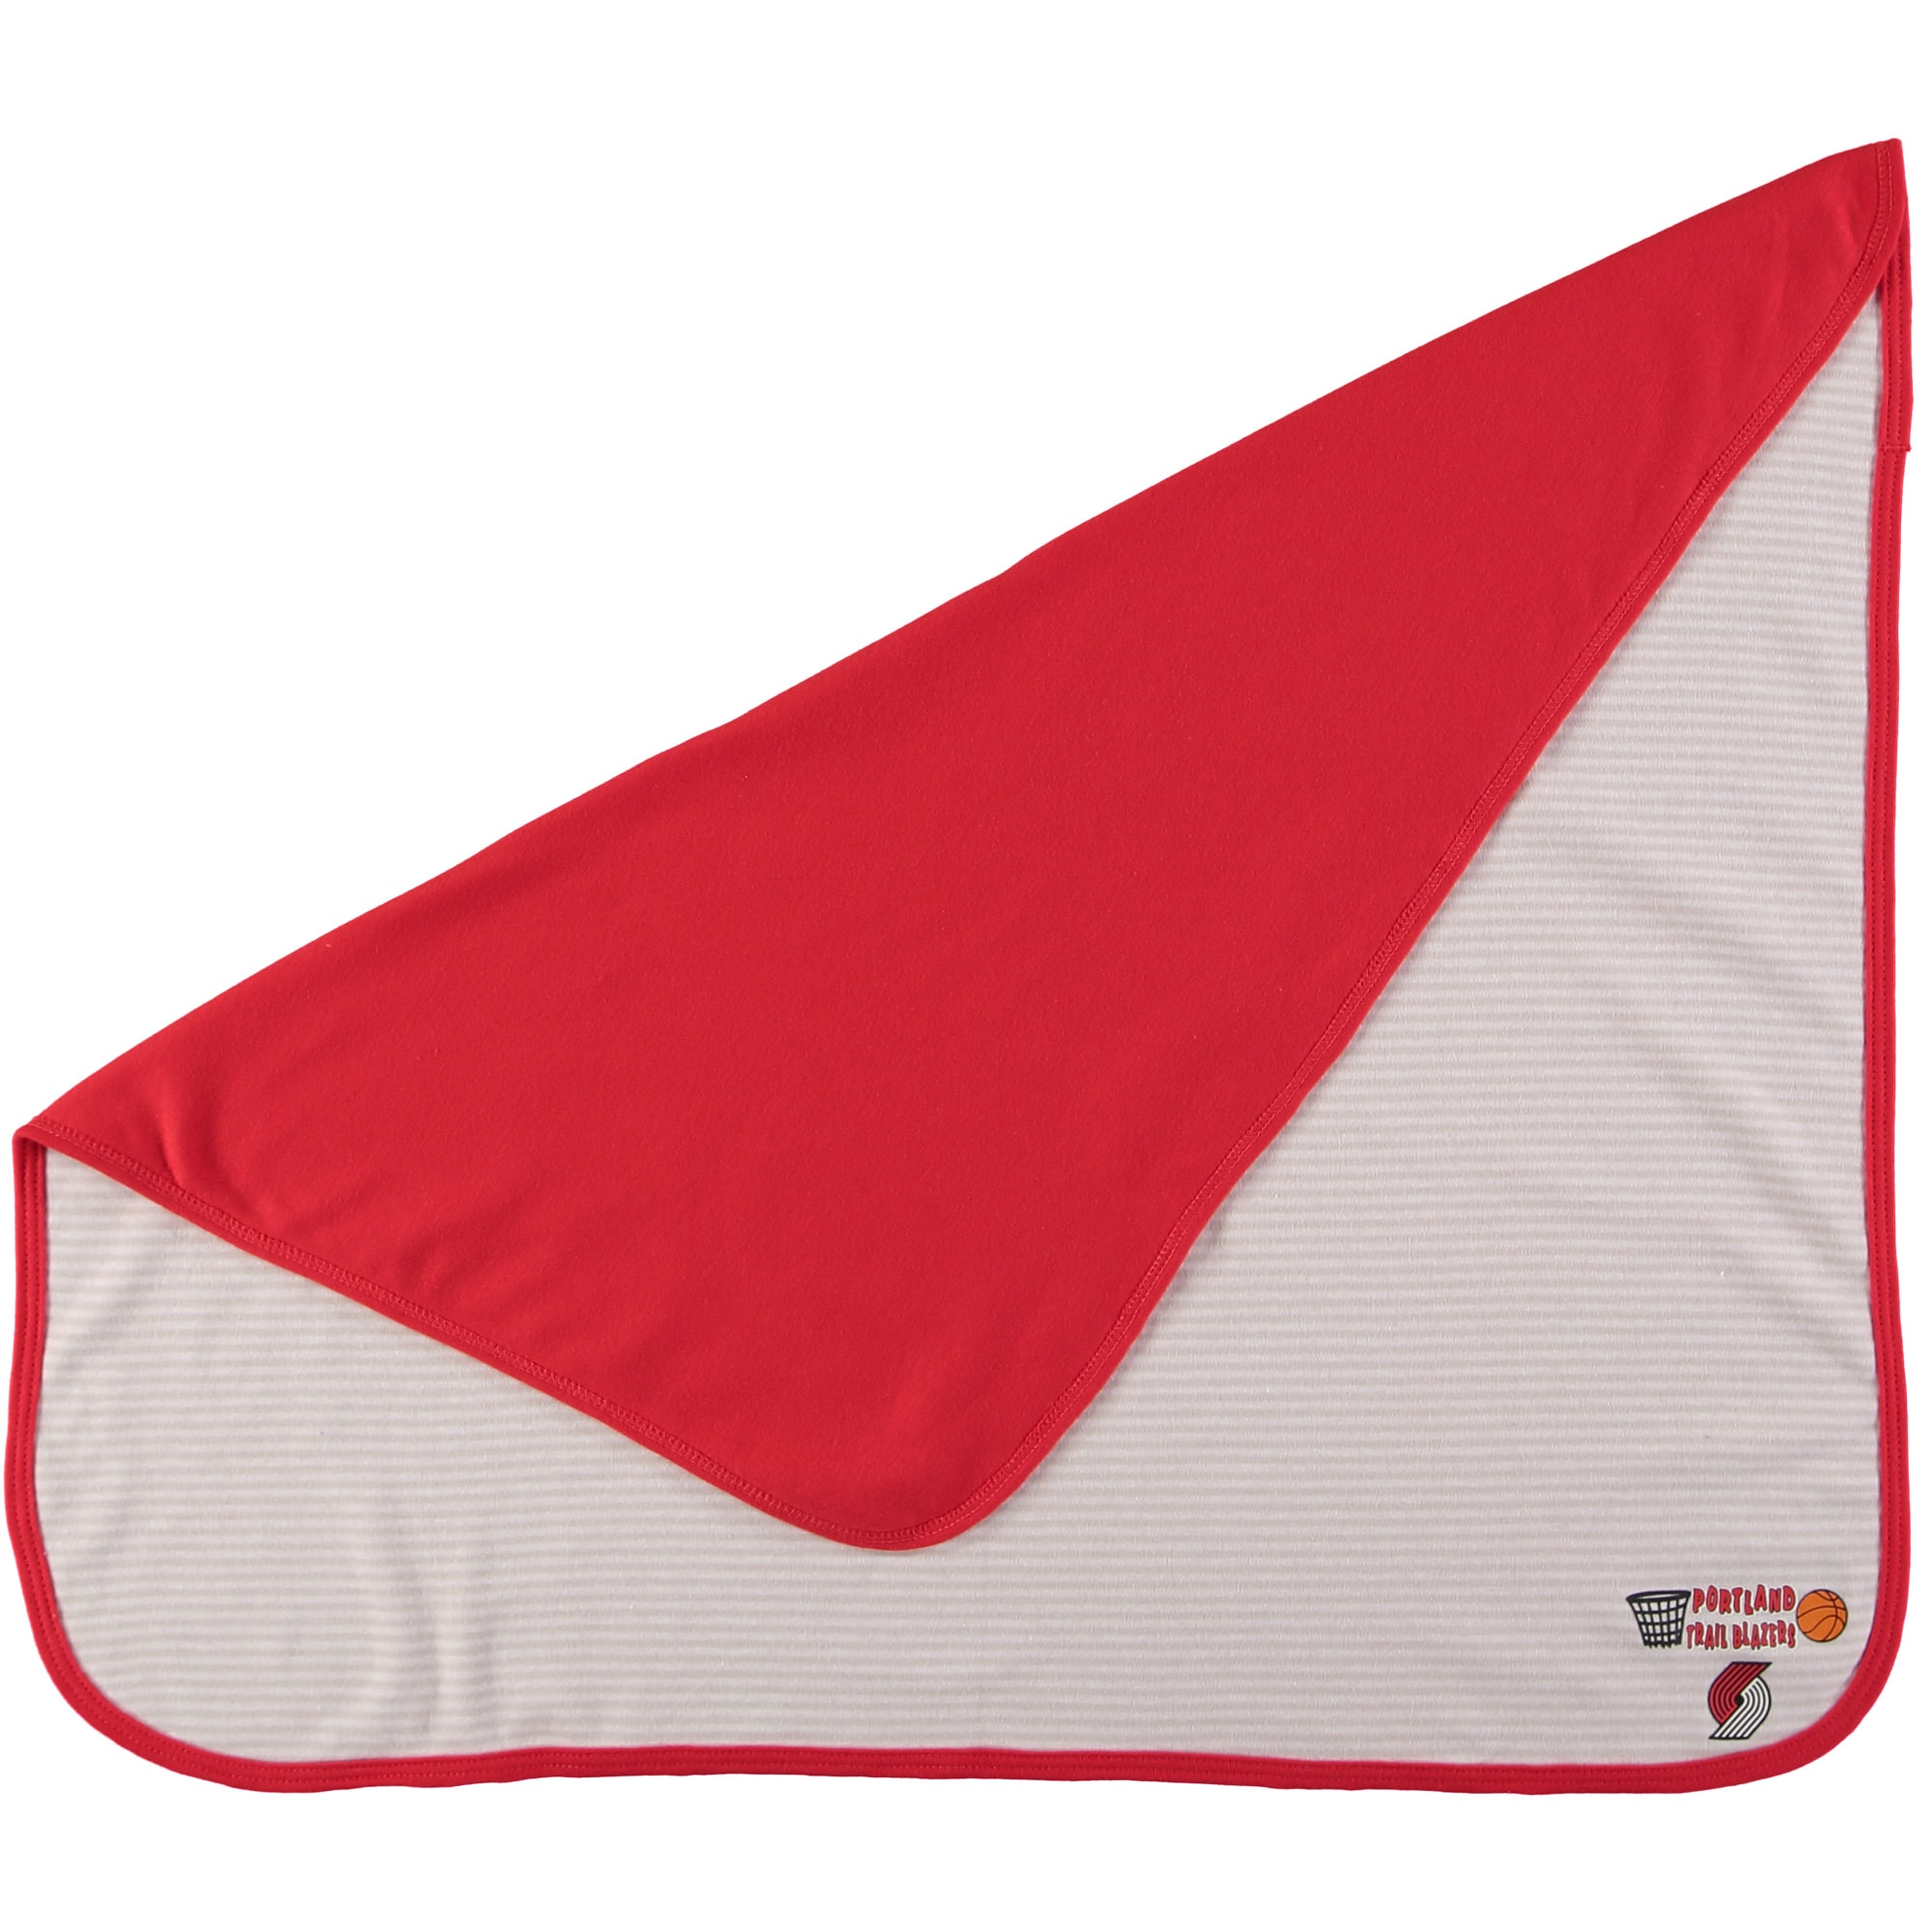 Portland Trail Blazers Infant Lil Kicker Baby Blanket - Red